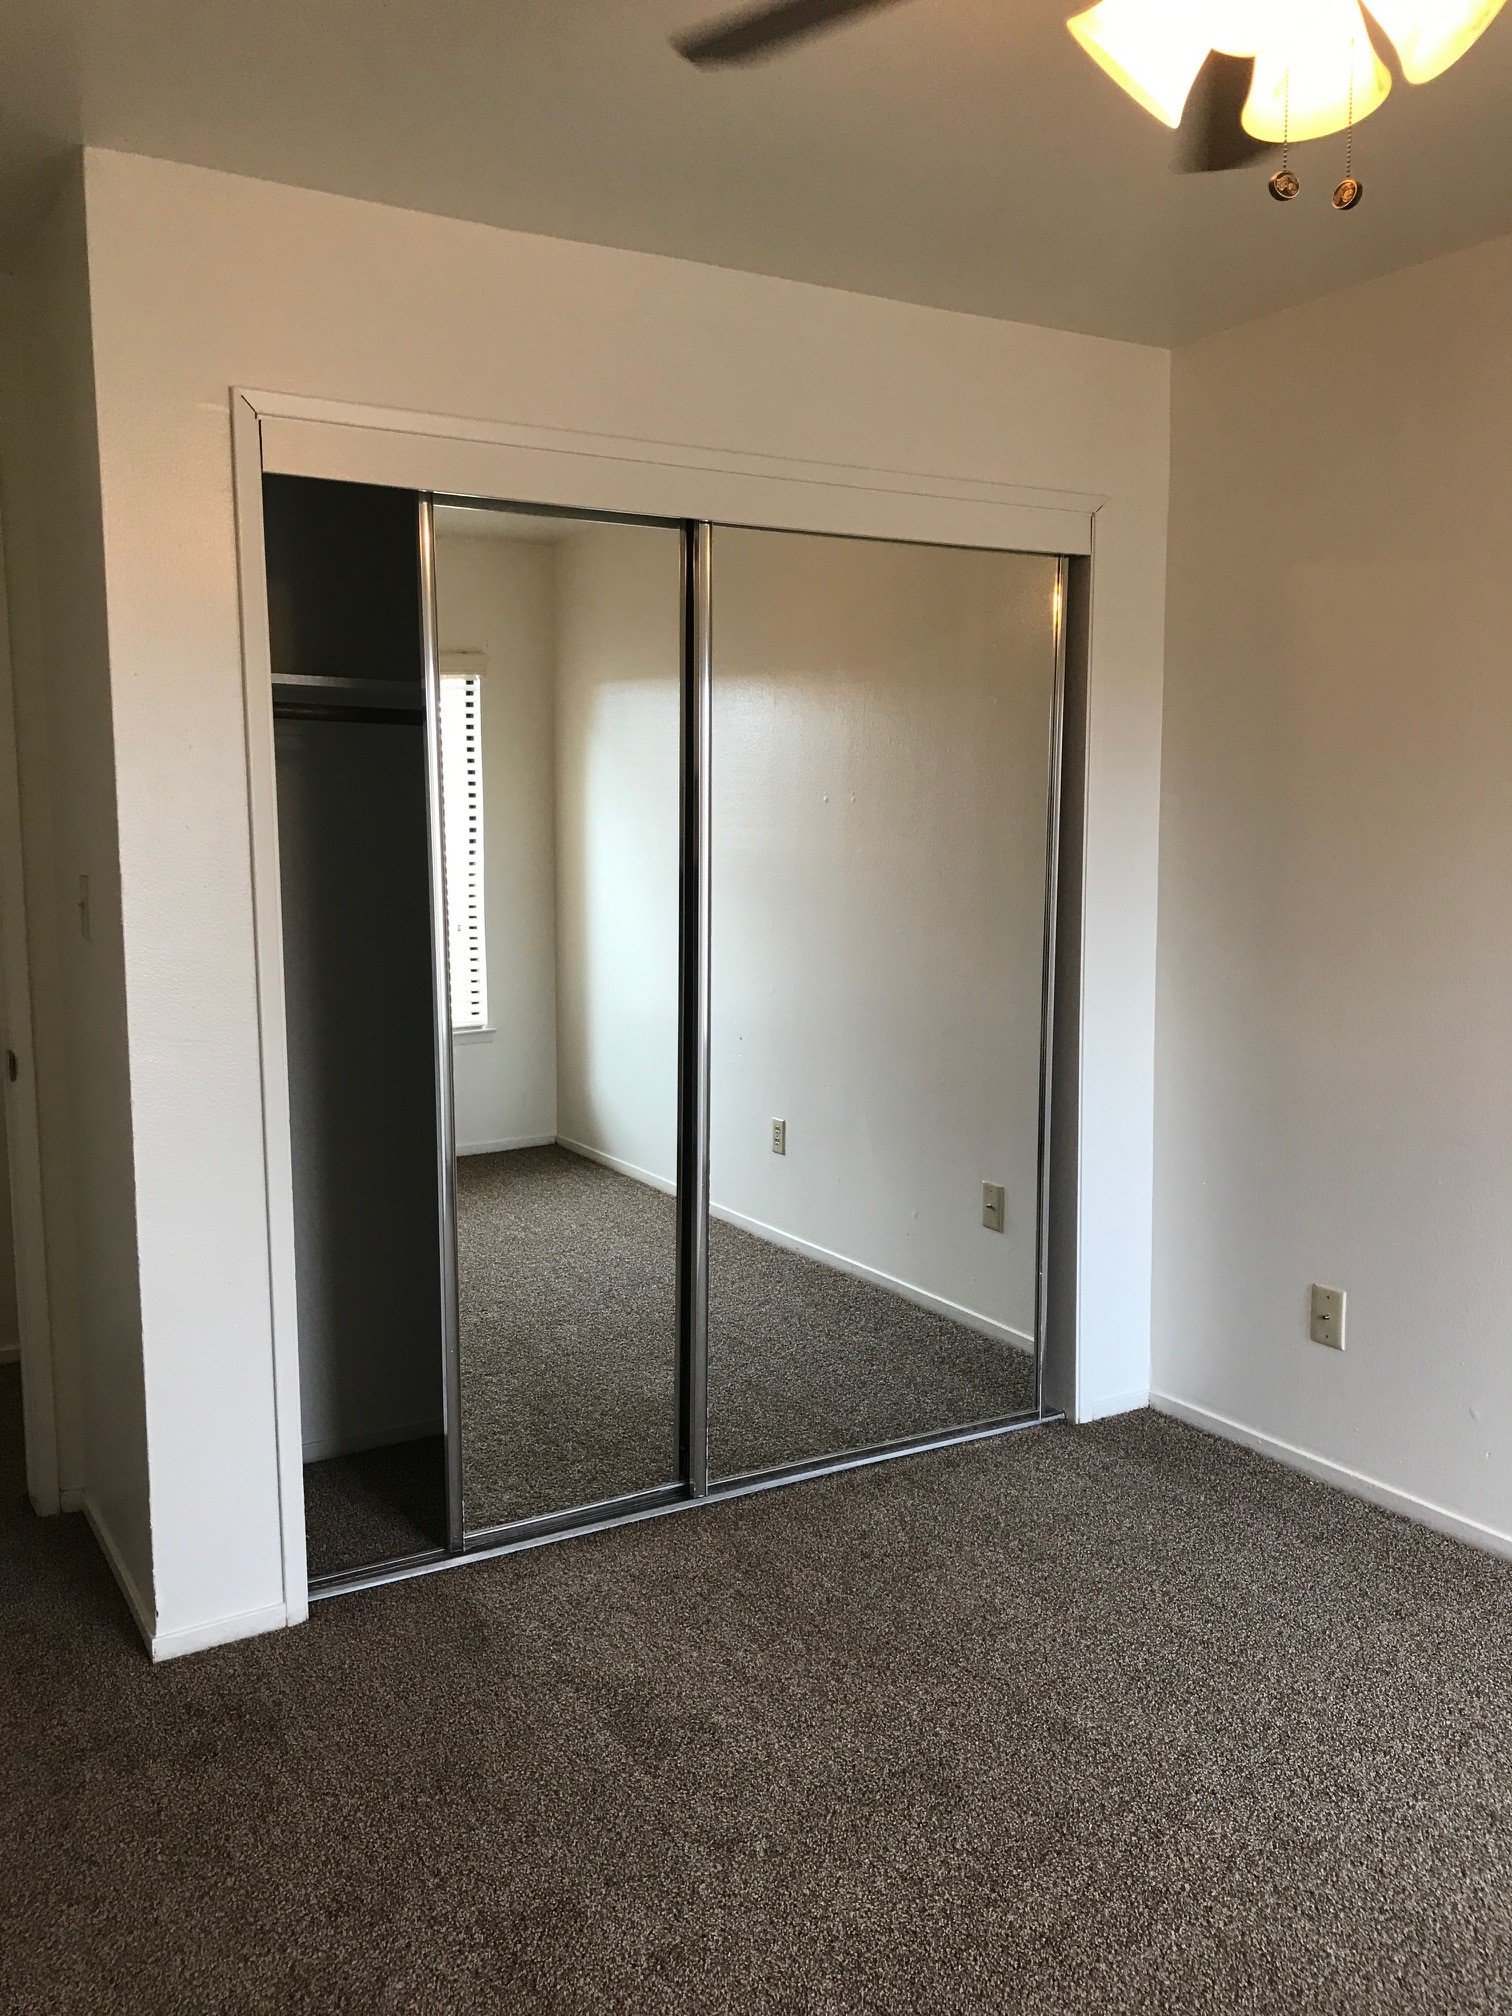 a room with a large mirror